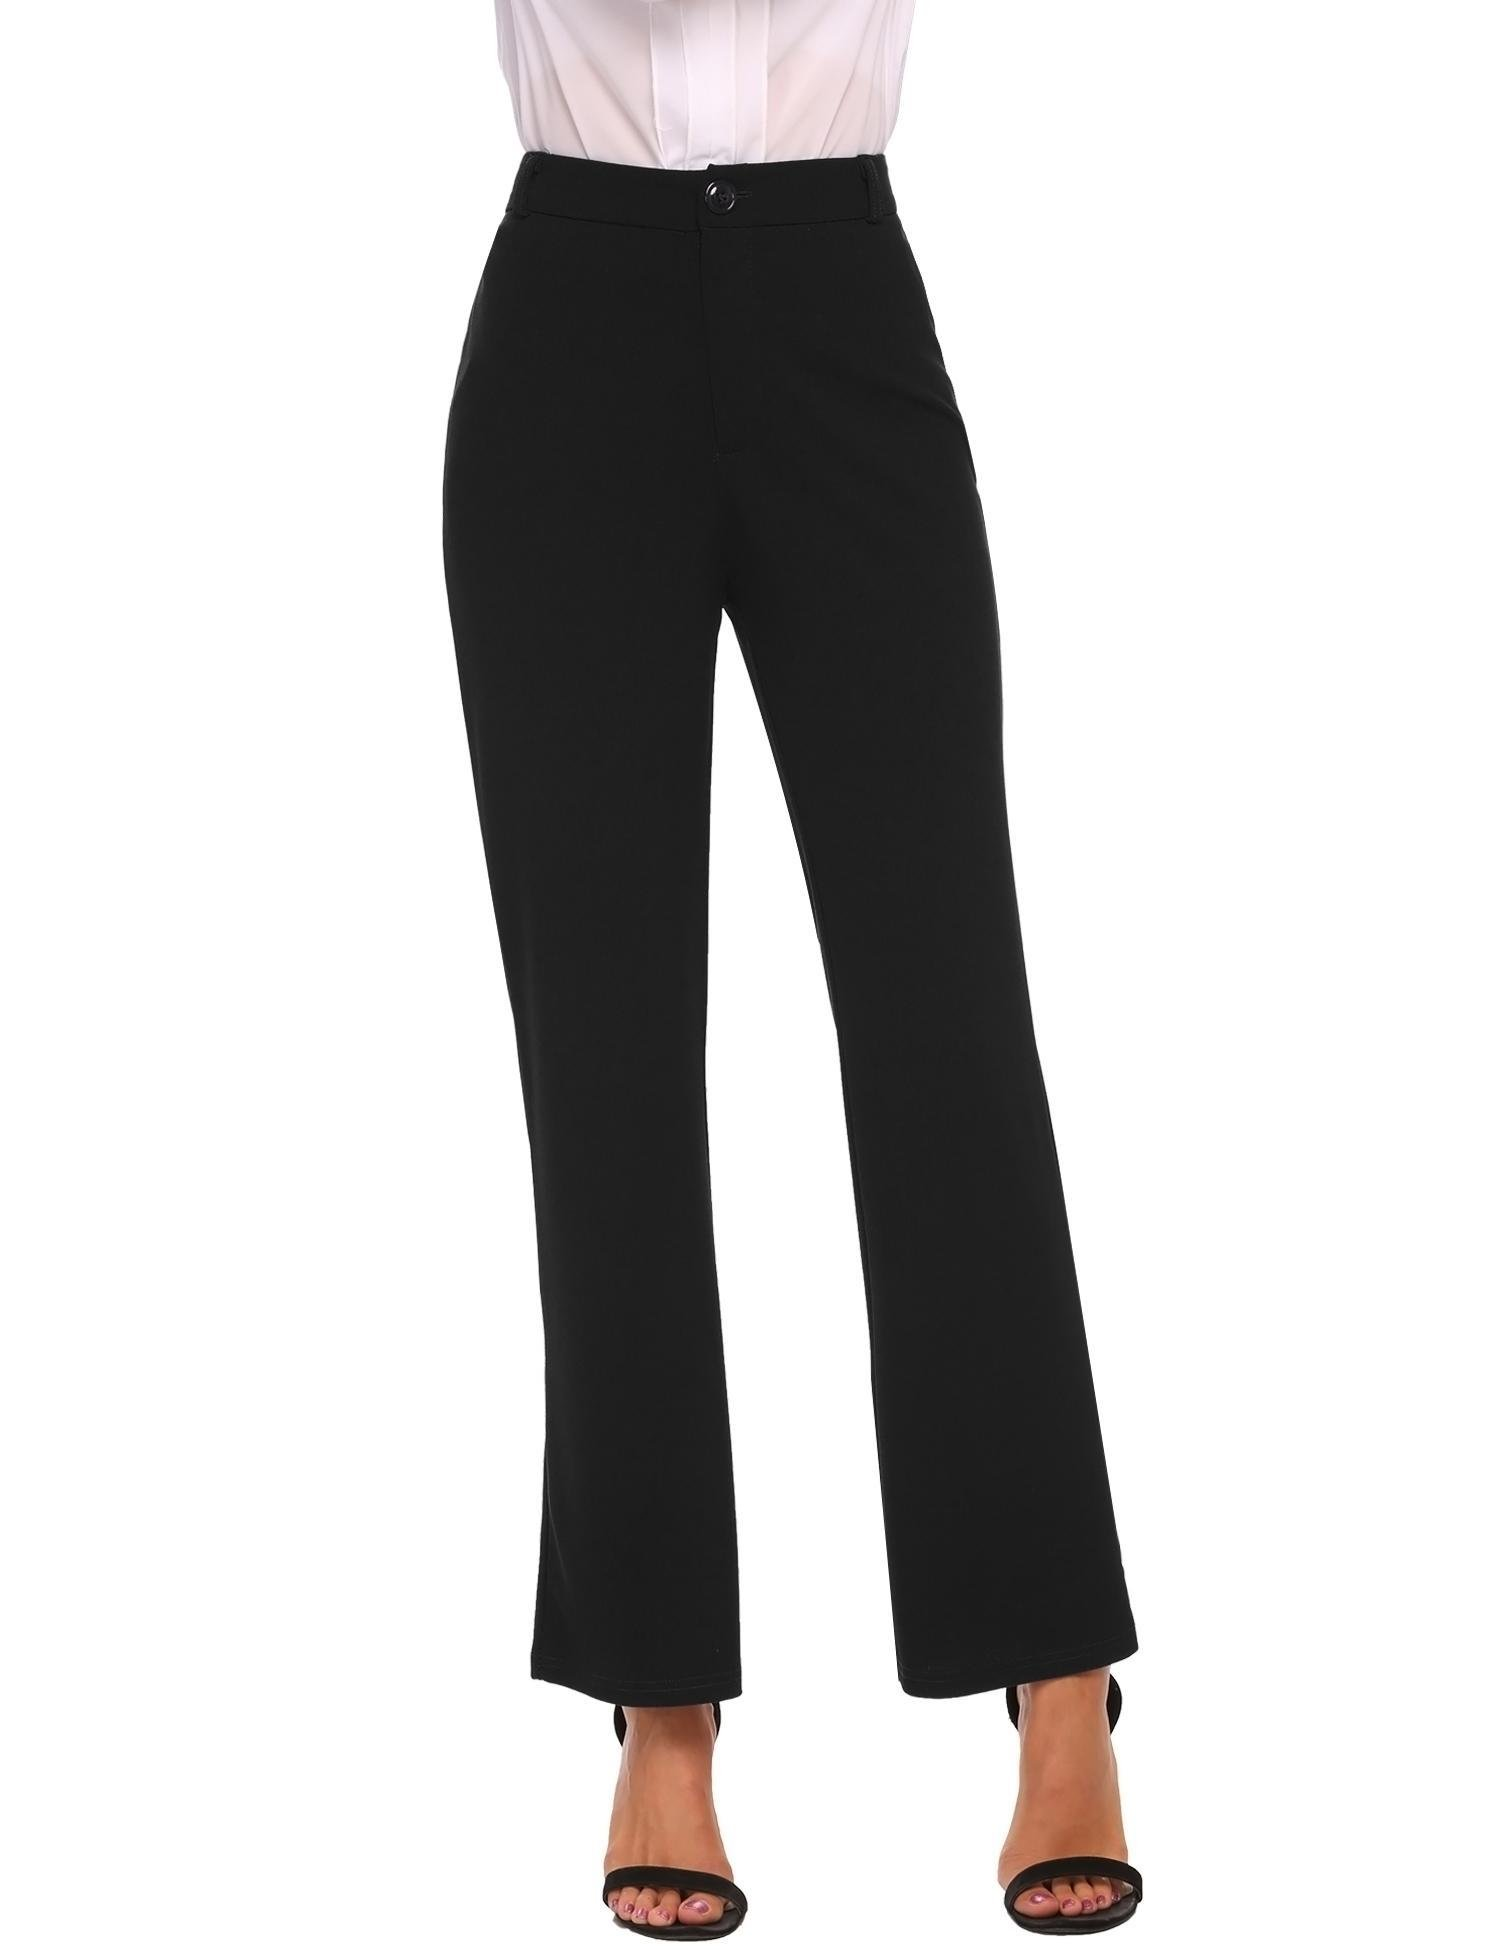 Zeagoo Women's Casual Loose Wide Flare Leg High Waist Long Pants Black M